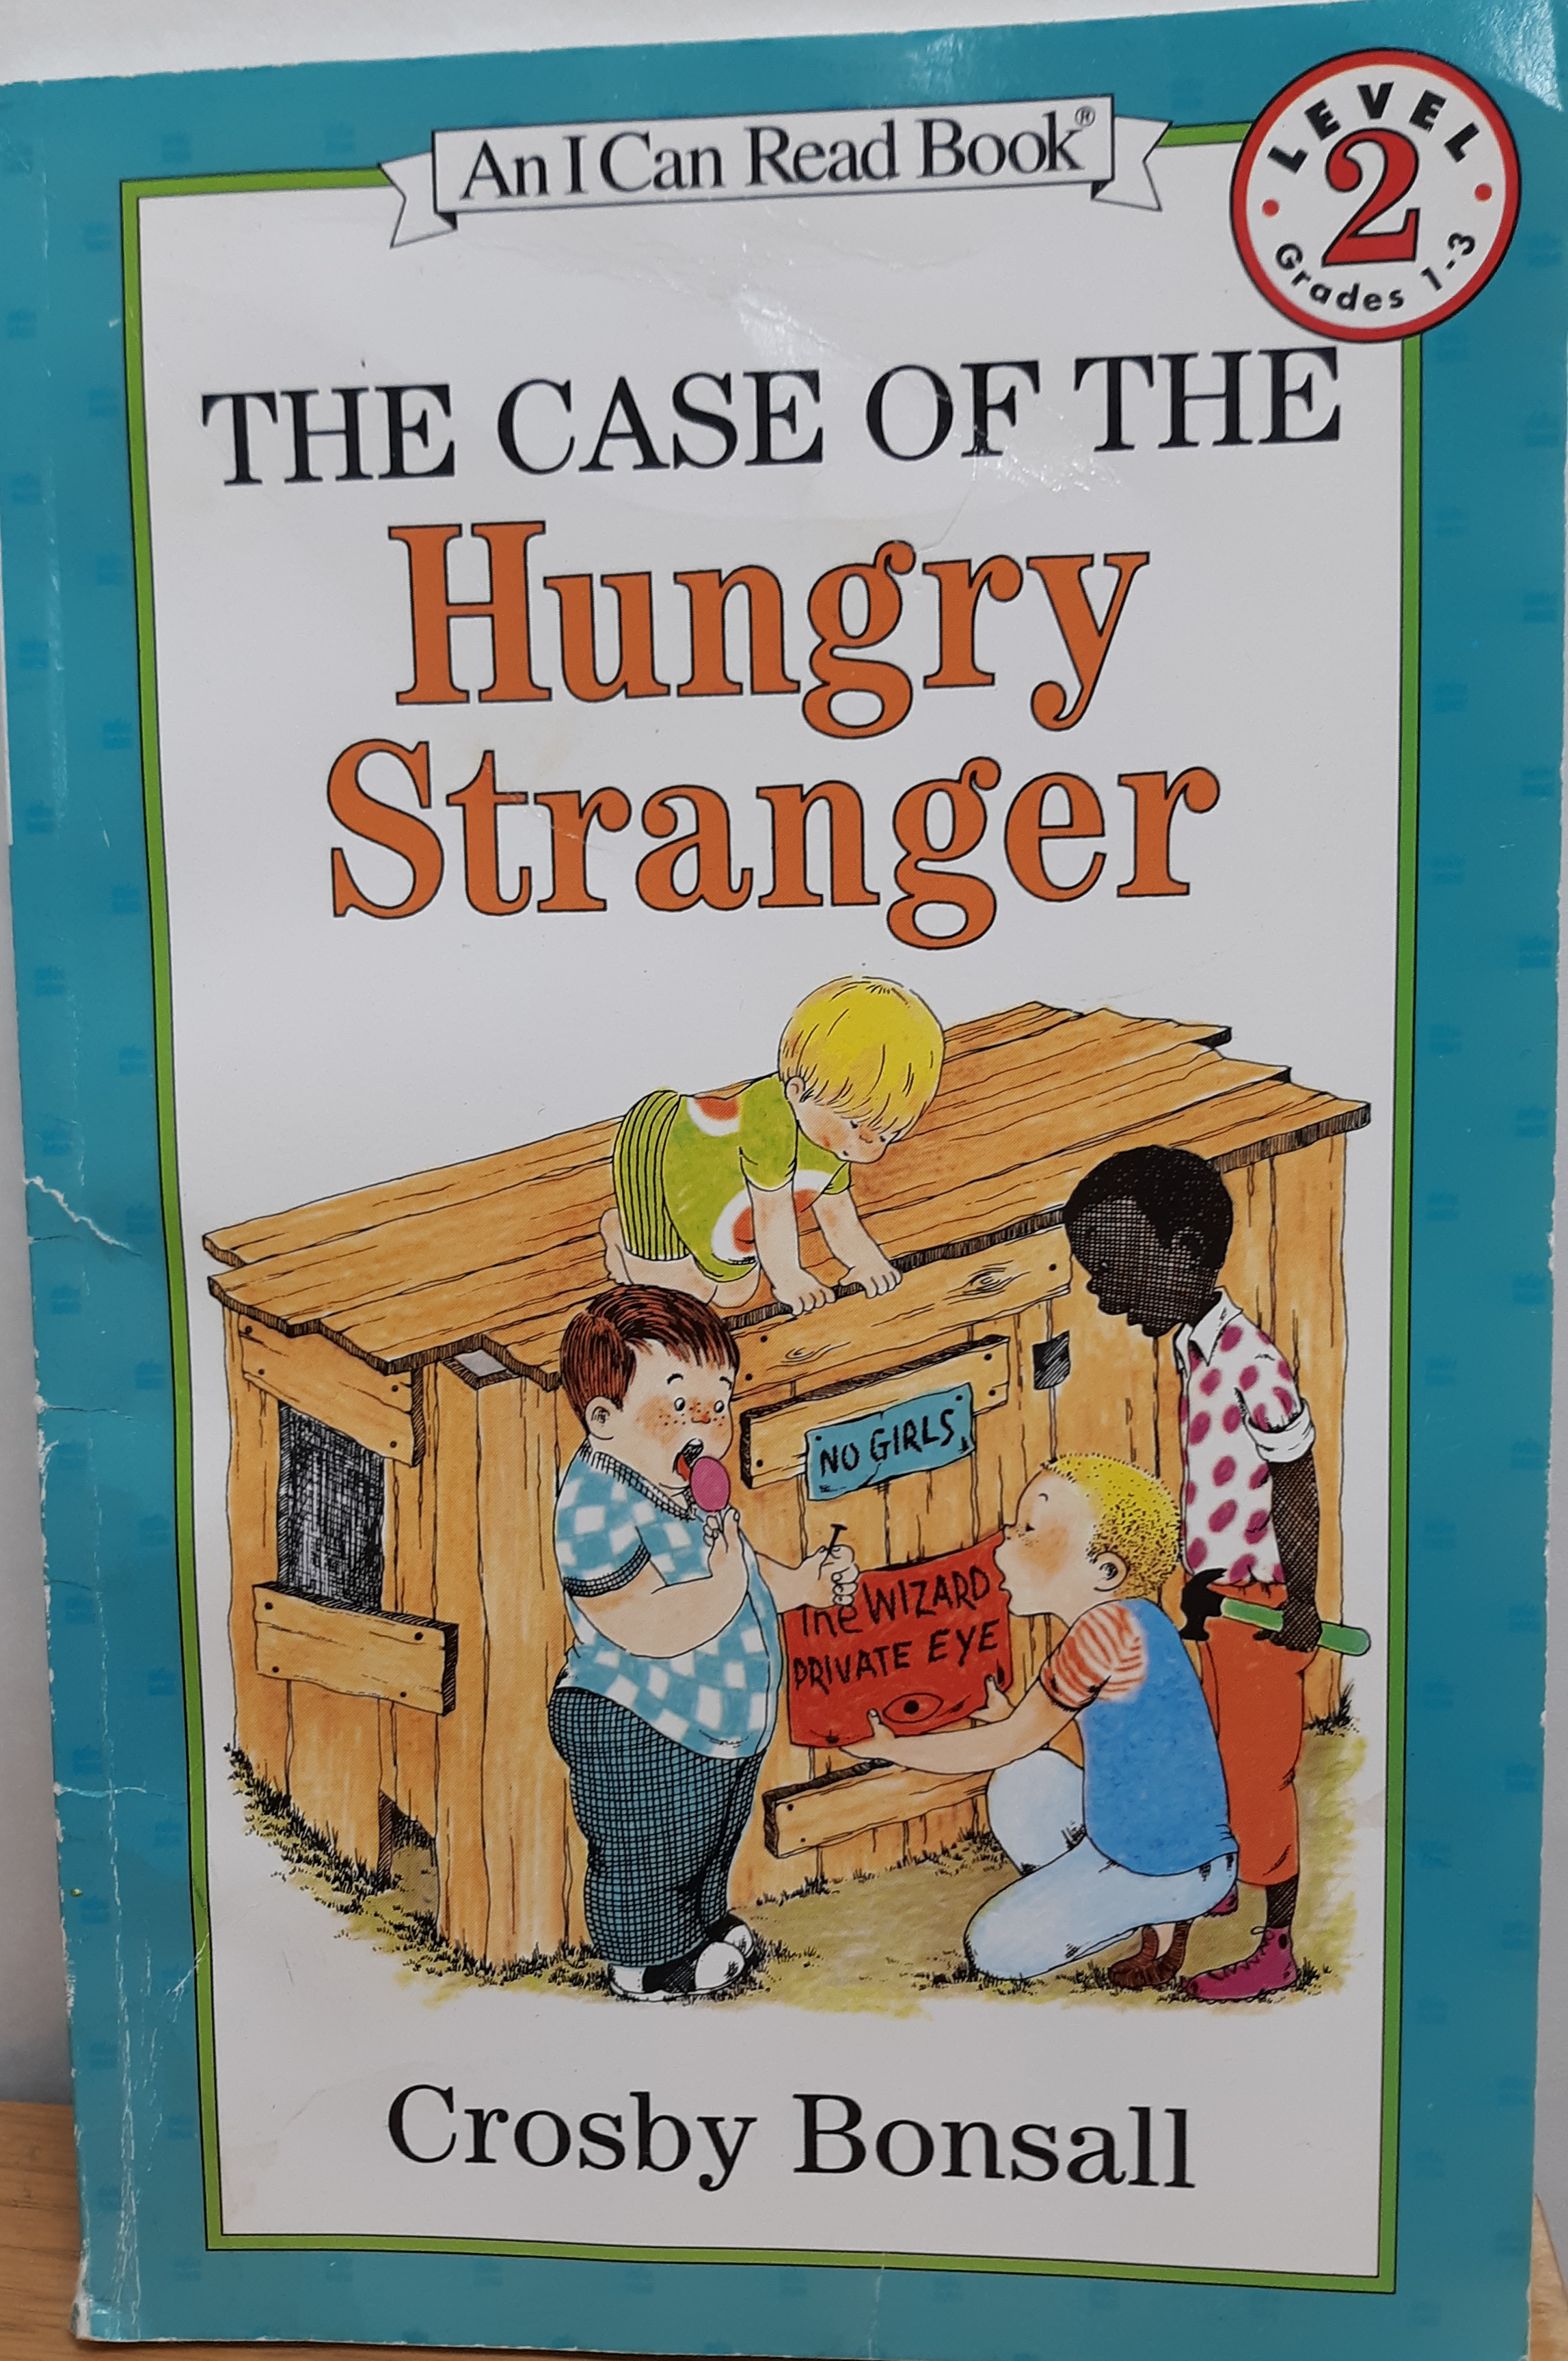 https://0201.nccdn.net/1_2/000/000/186/1ae/the-case-of-the-hungry-stranger.png